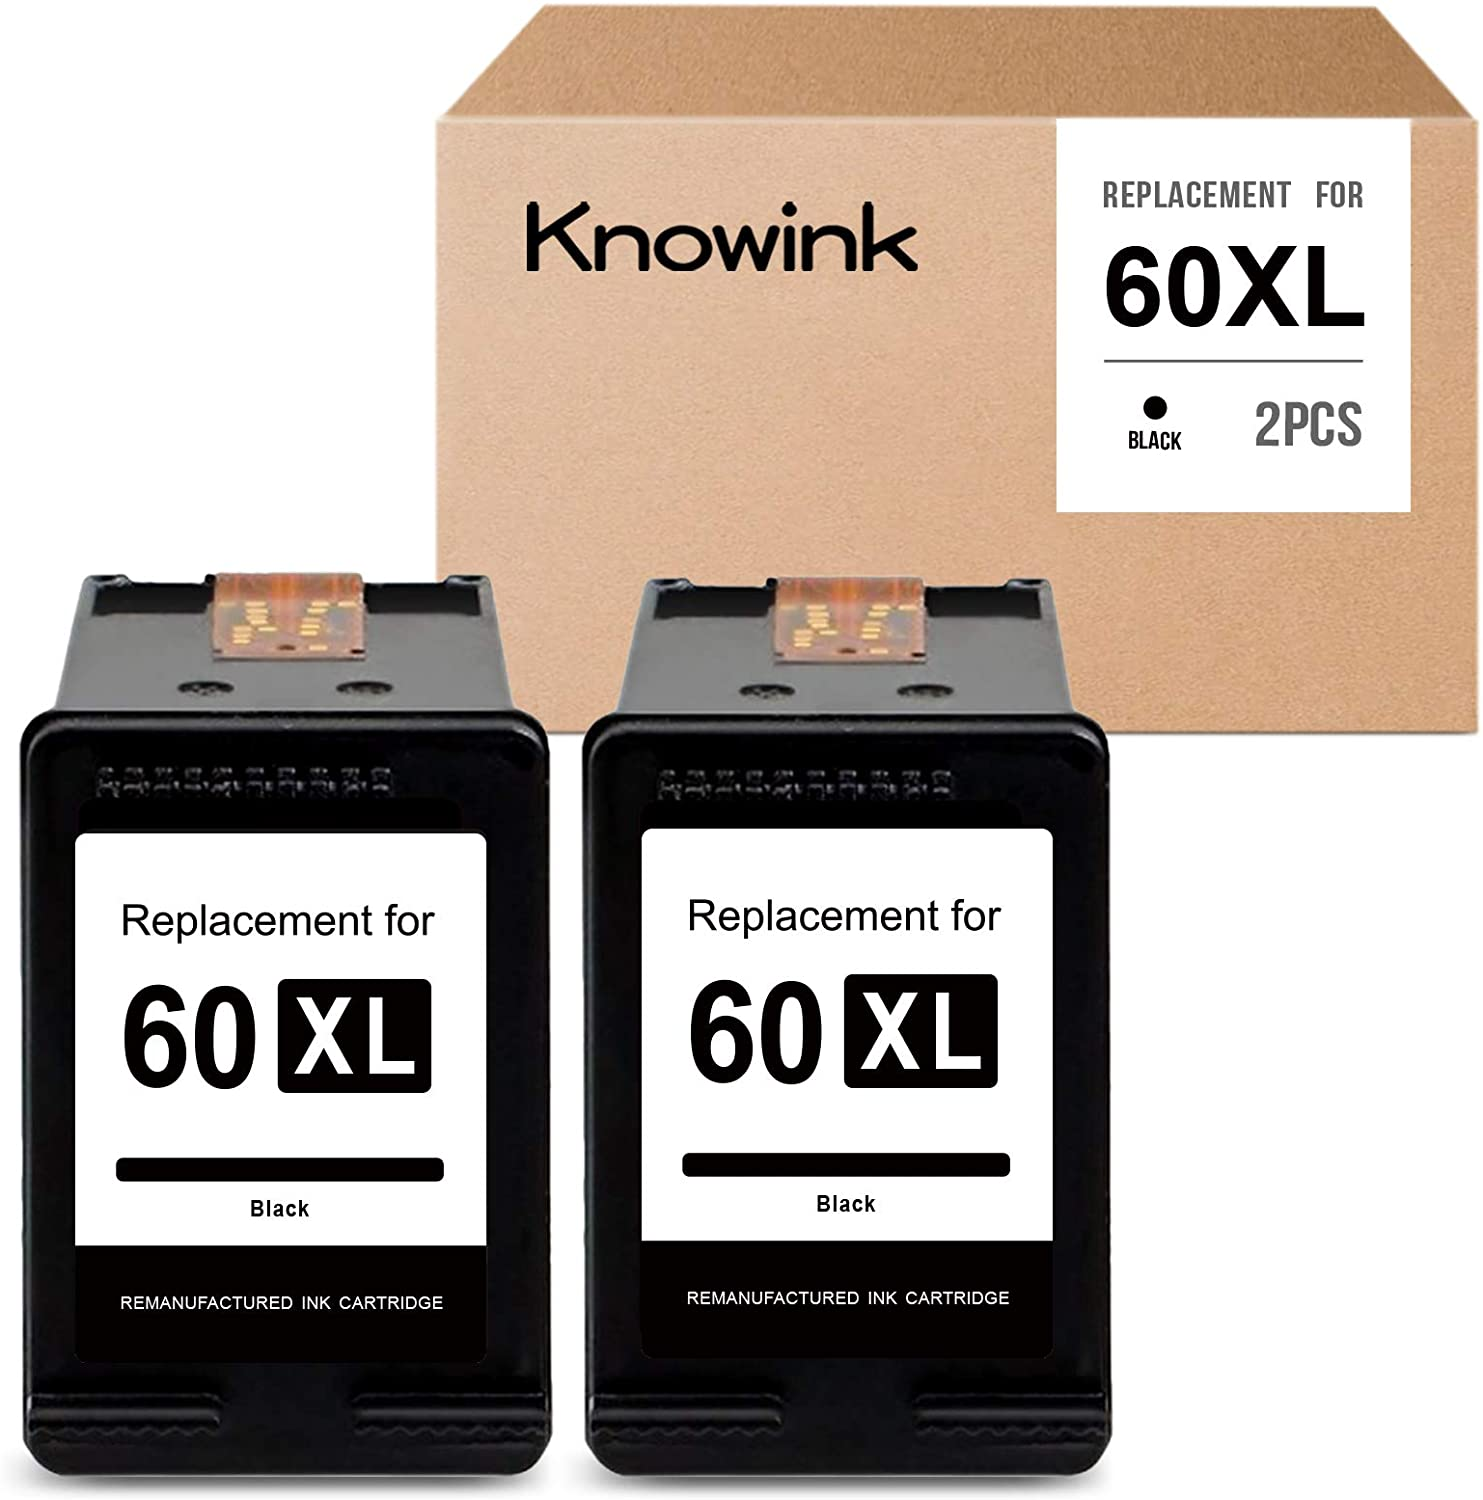 KNOWINK Remanufactured Ink Cartridge Replacement for HP 60XL 60 XL to use with Photosmart C4680 D110a Deskjet D2680 D2660 D2530 D1660 F4210 F2430 Envy 120 111 (Black, 2-Pack)